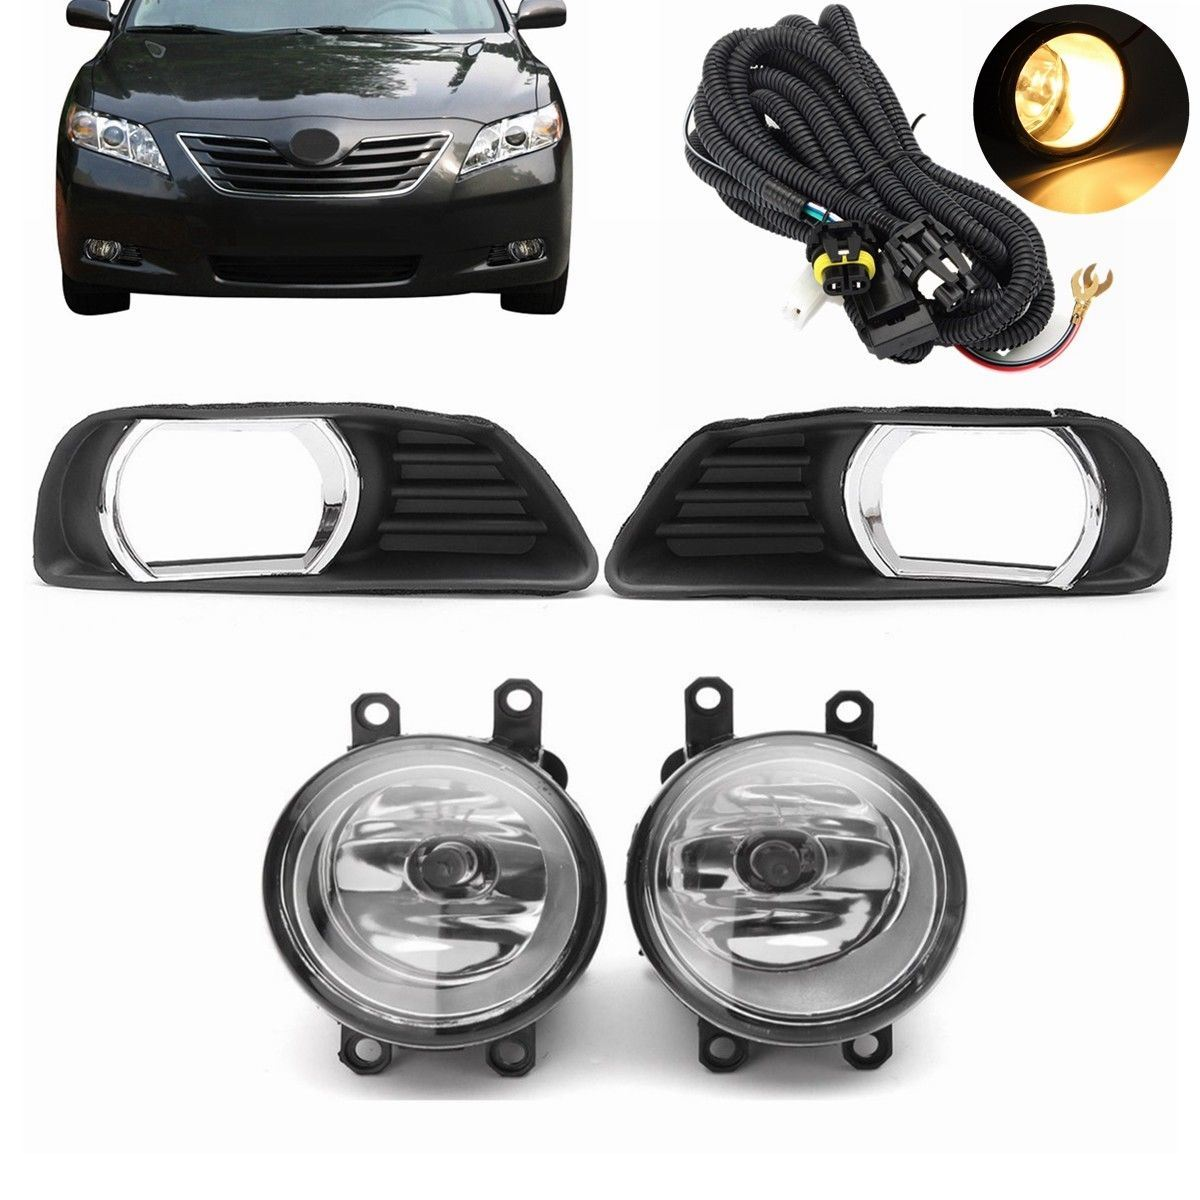 hight resolution of china acv40 valeo foglight fog lamp with valeo complete assy for toyota camry 2007 china fog lamp toyota fog lamp